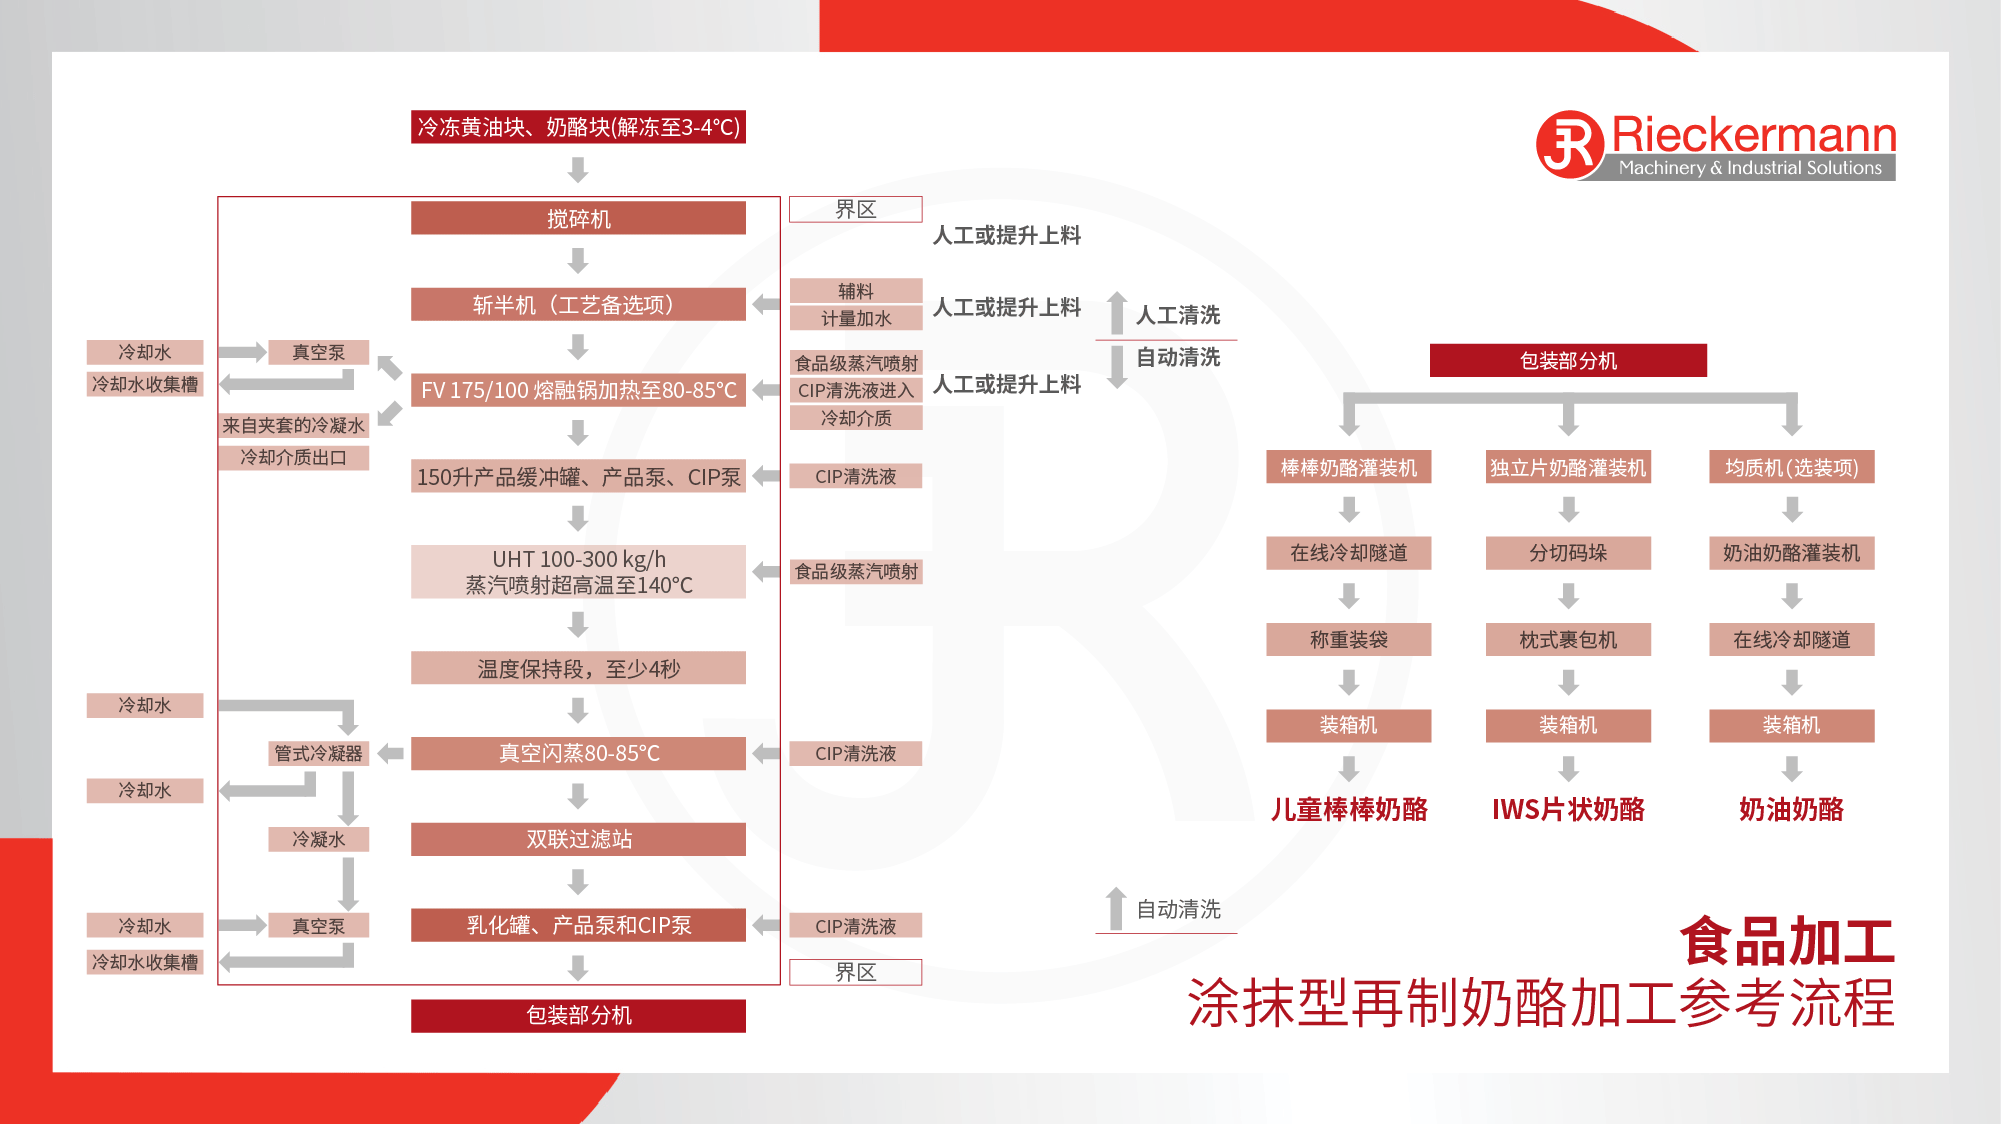 Food Cheese Processing Flowchart in Chinese